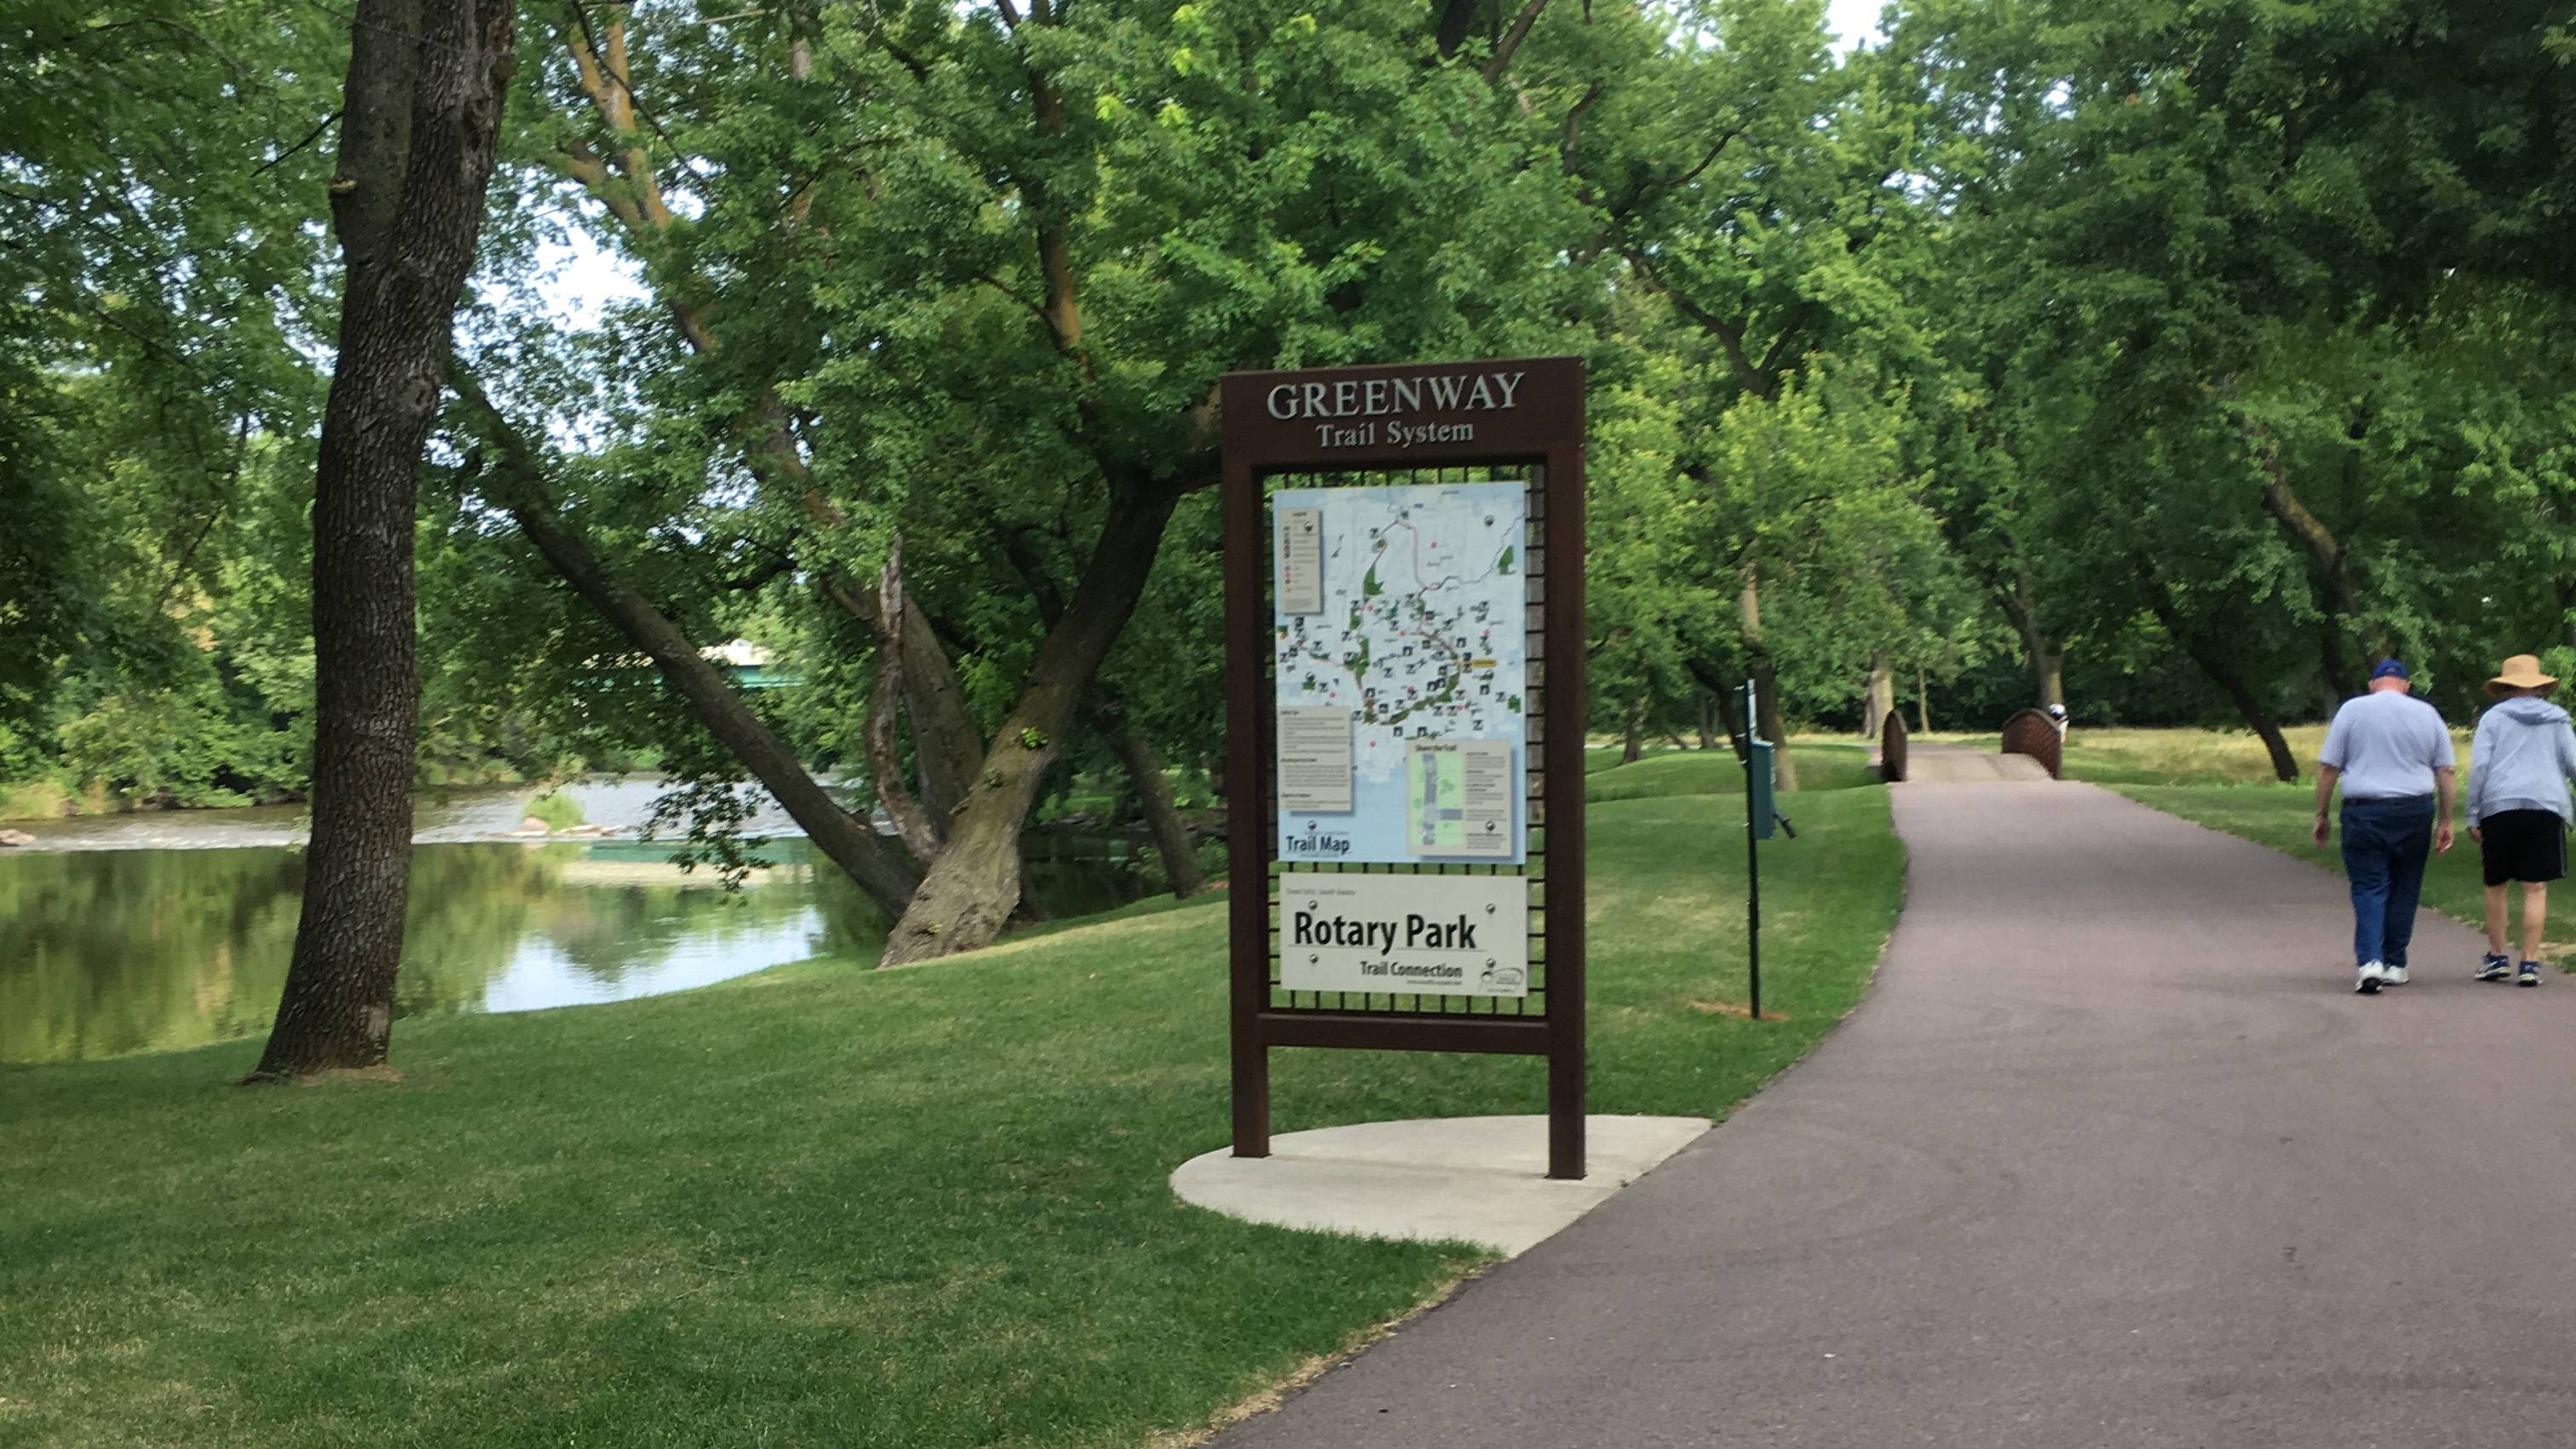 Greenway Trail System